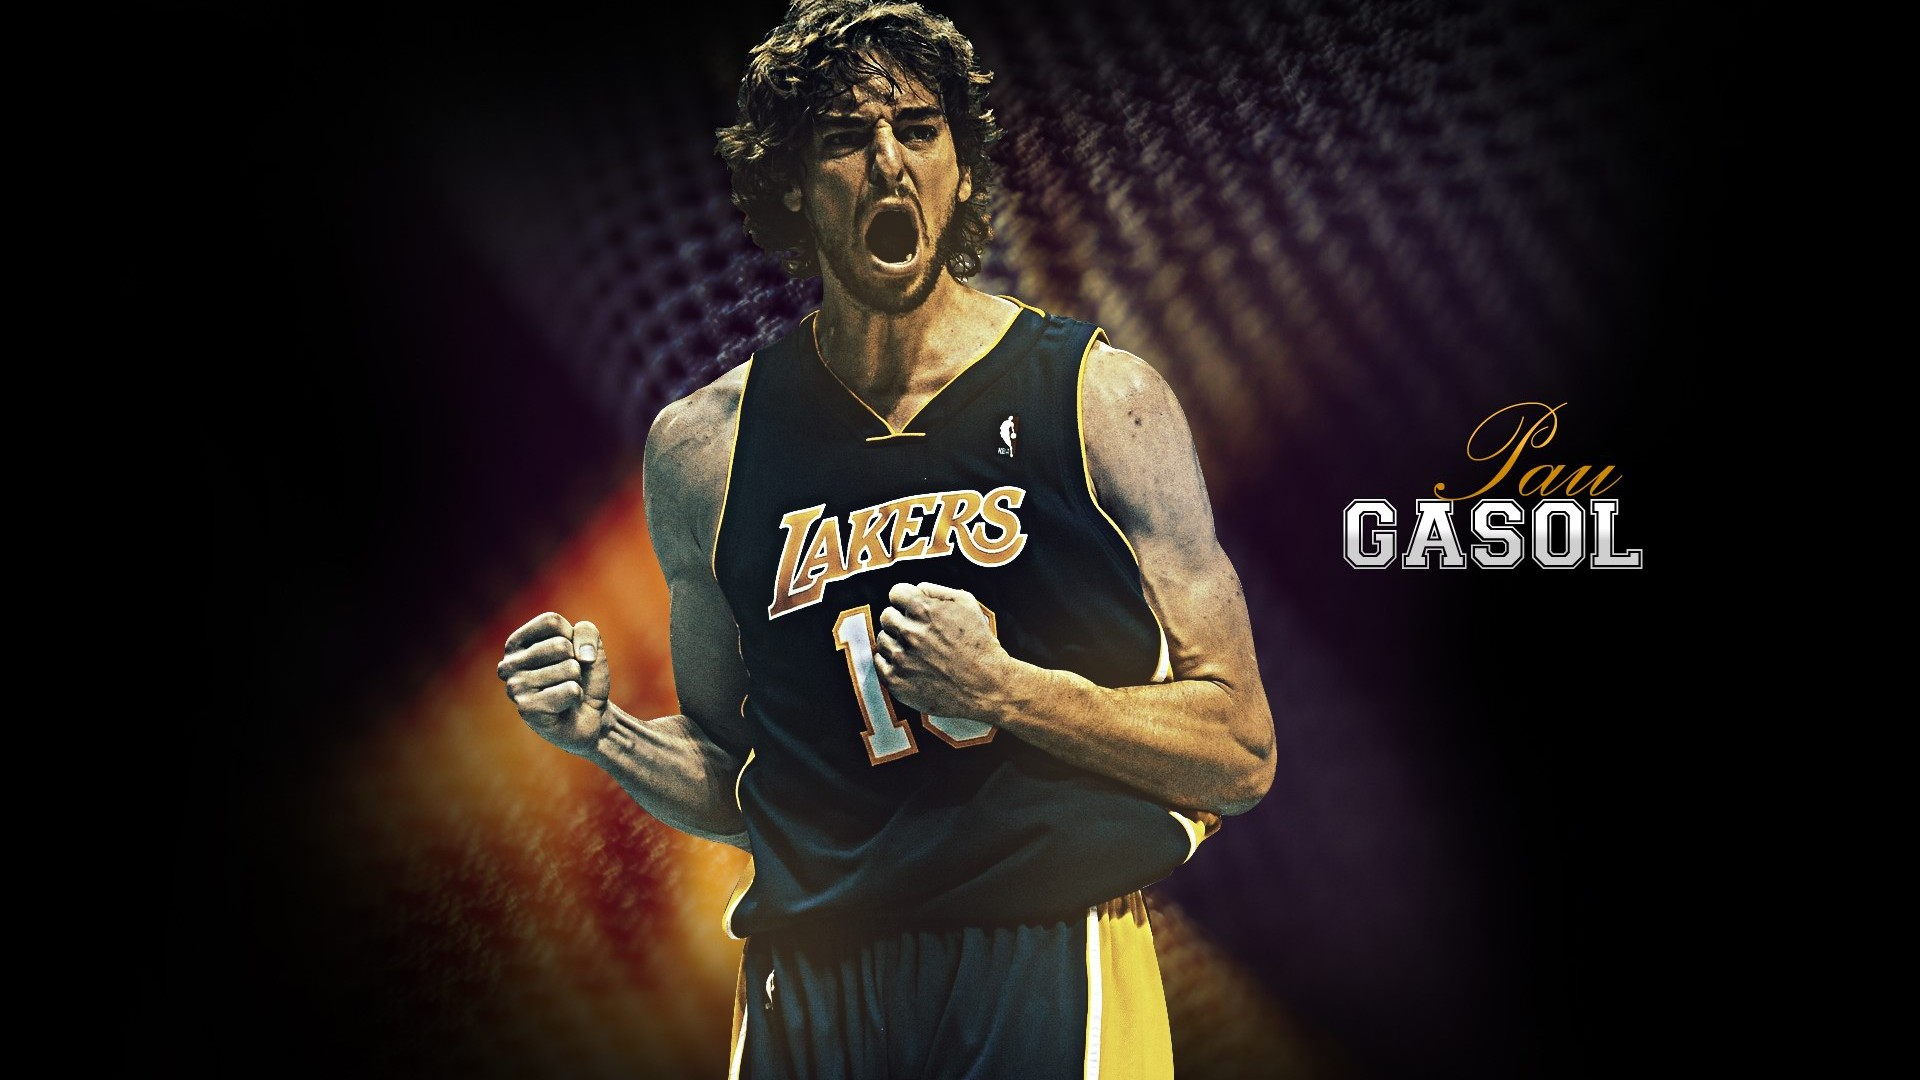 Los Angeles Lakers Official Wallpaper 20